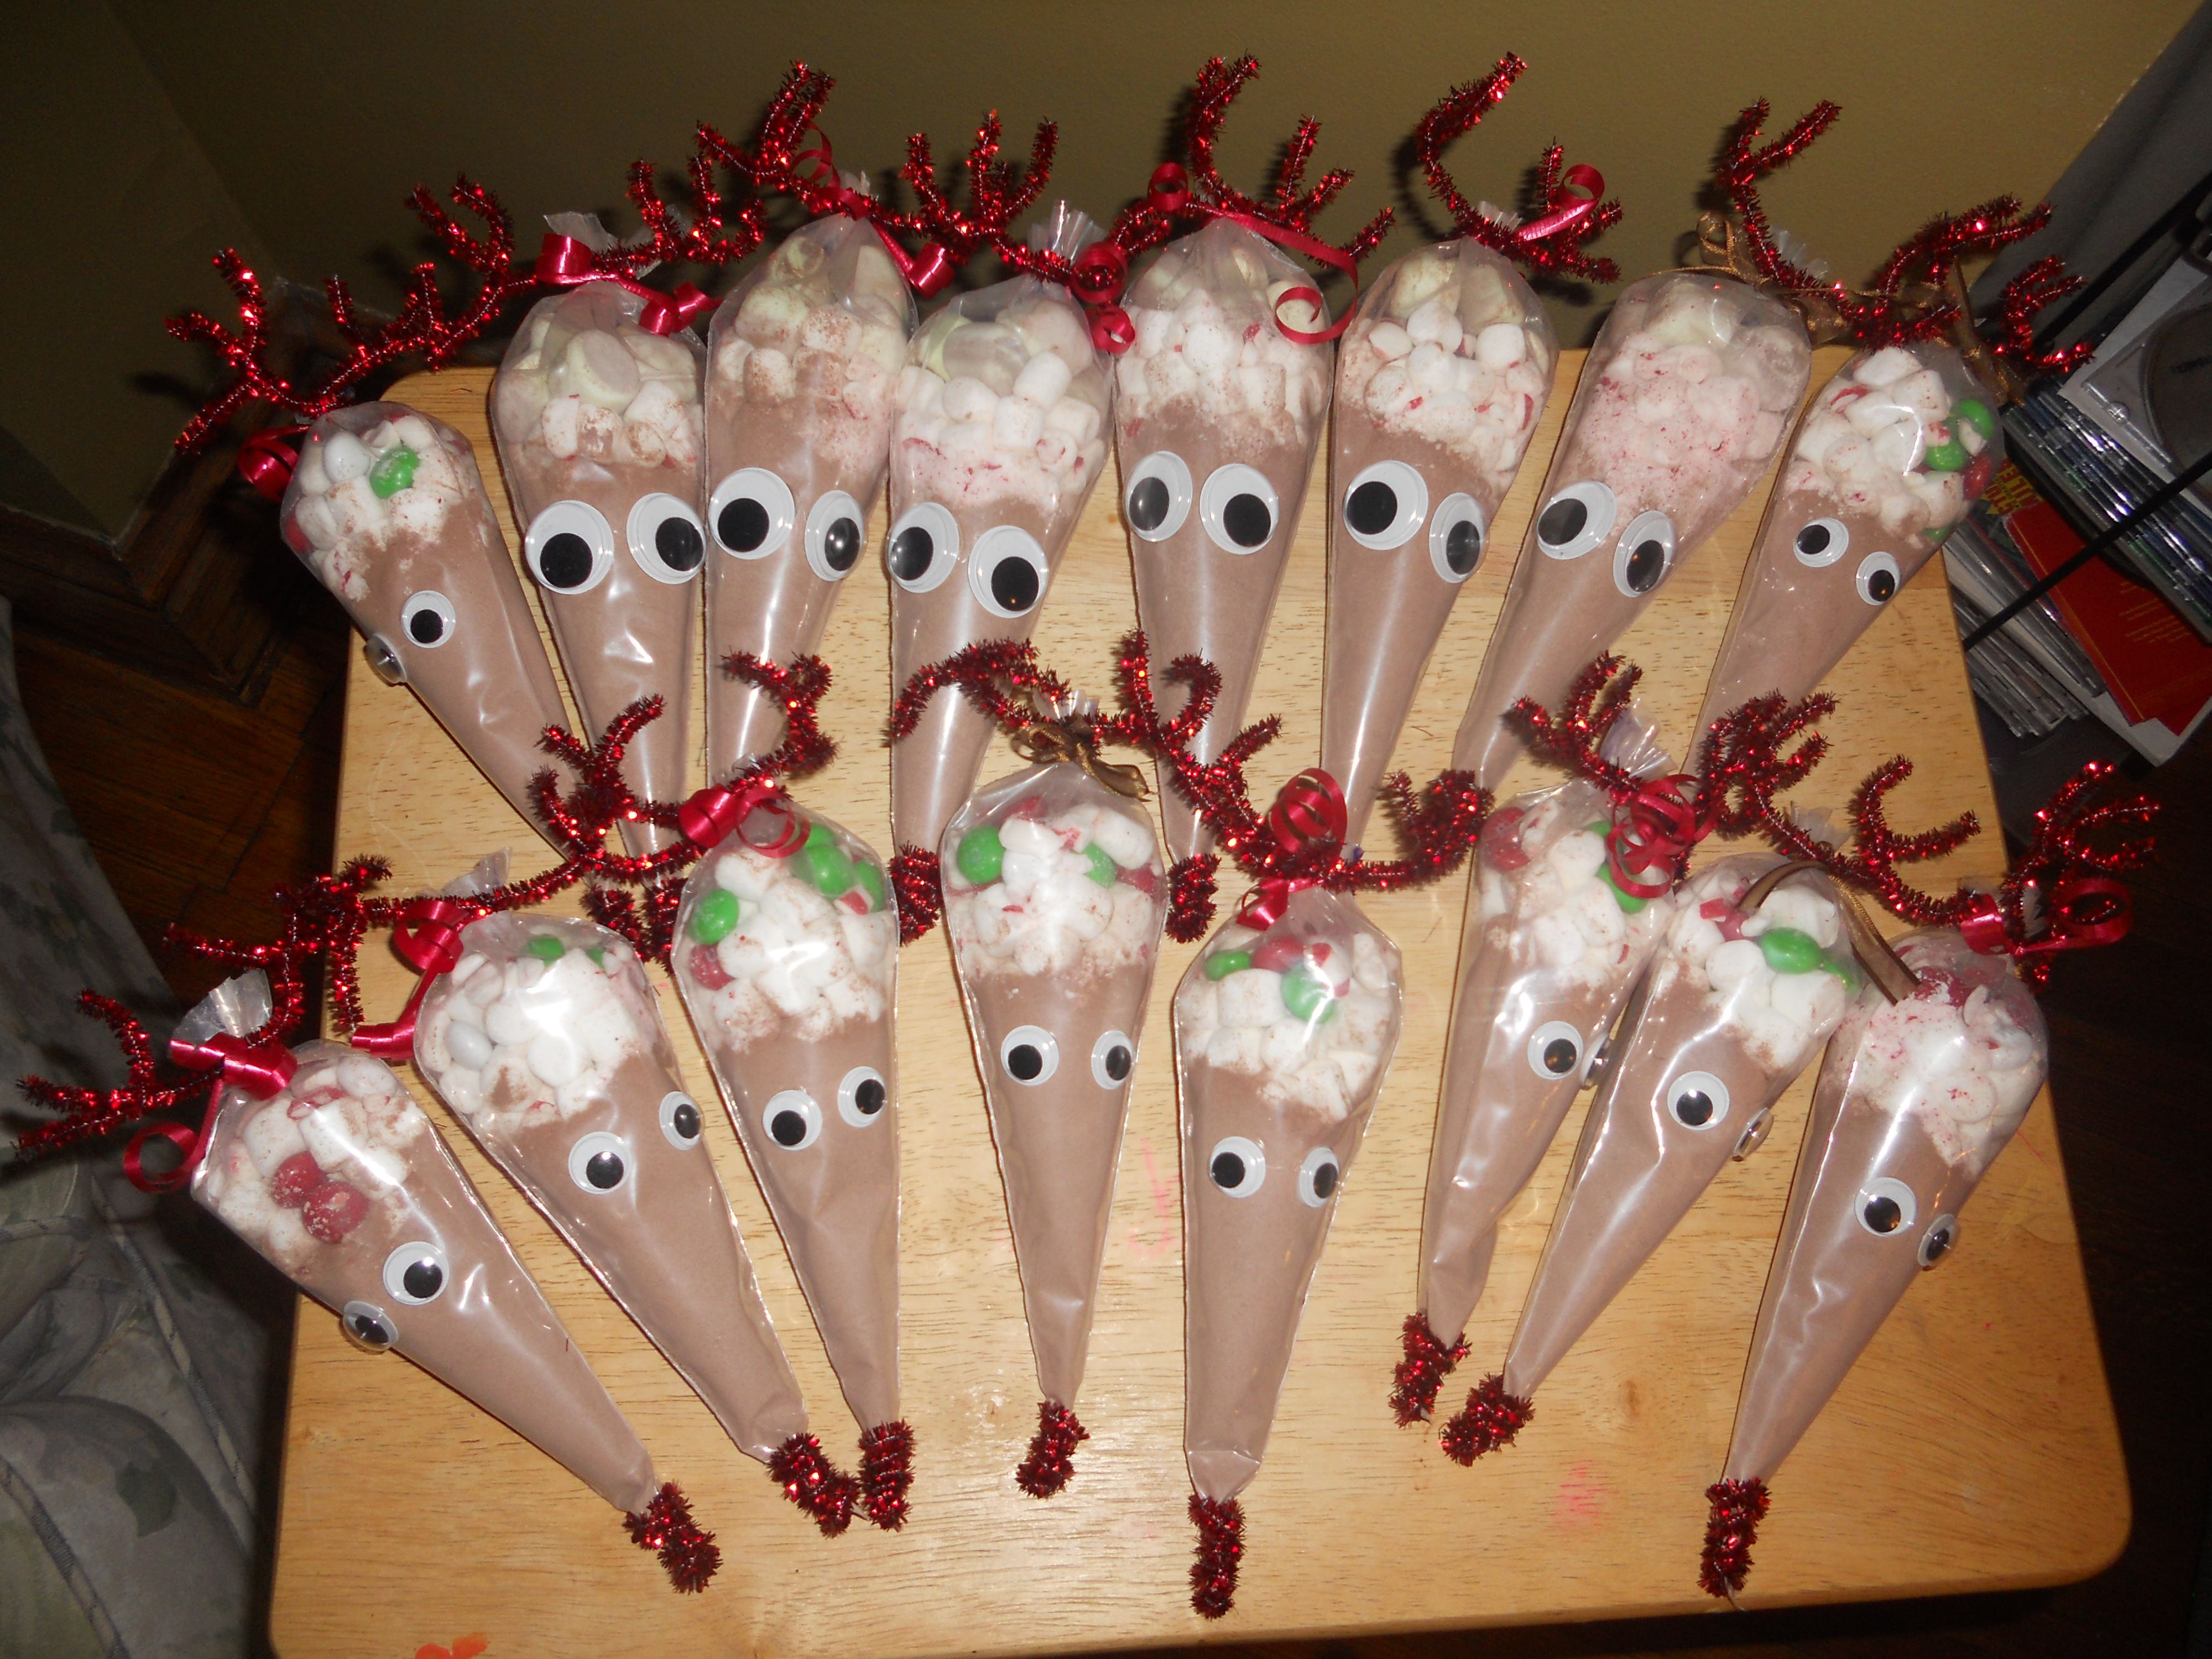 Christmas Party Ideas For Preschoolers Part - 39: CHRISTMAS CRAFT And Fun For G Kids Rudolph Hot Chocolate Treats. Just  Wanted To Repost! Everyone Loved This, And It Was Such A Fun Project For  The Grandkids ...